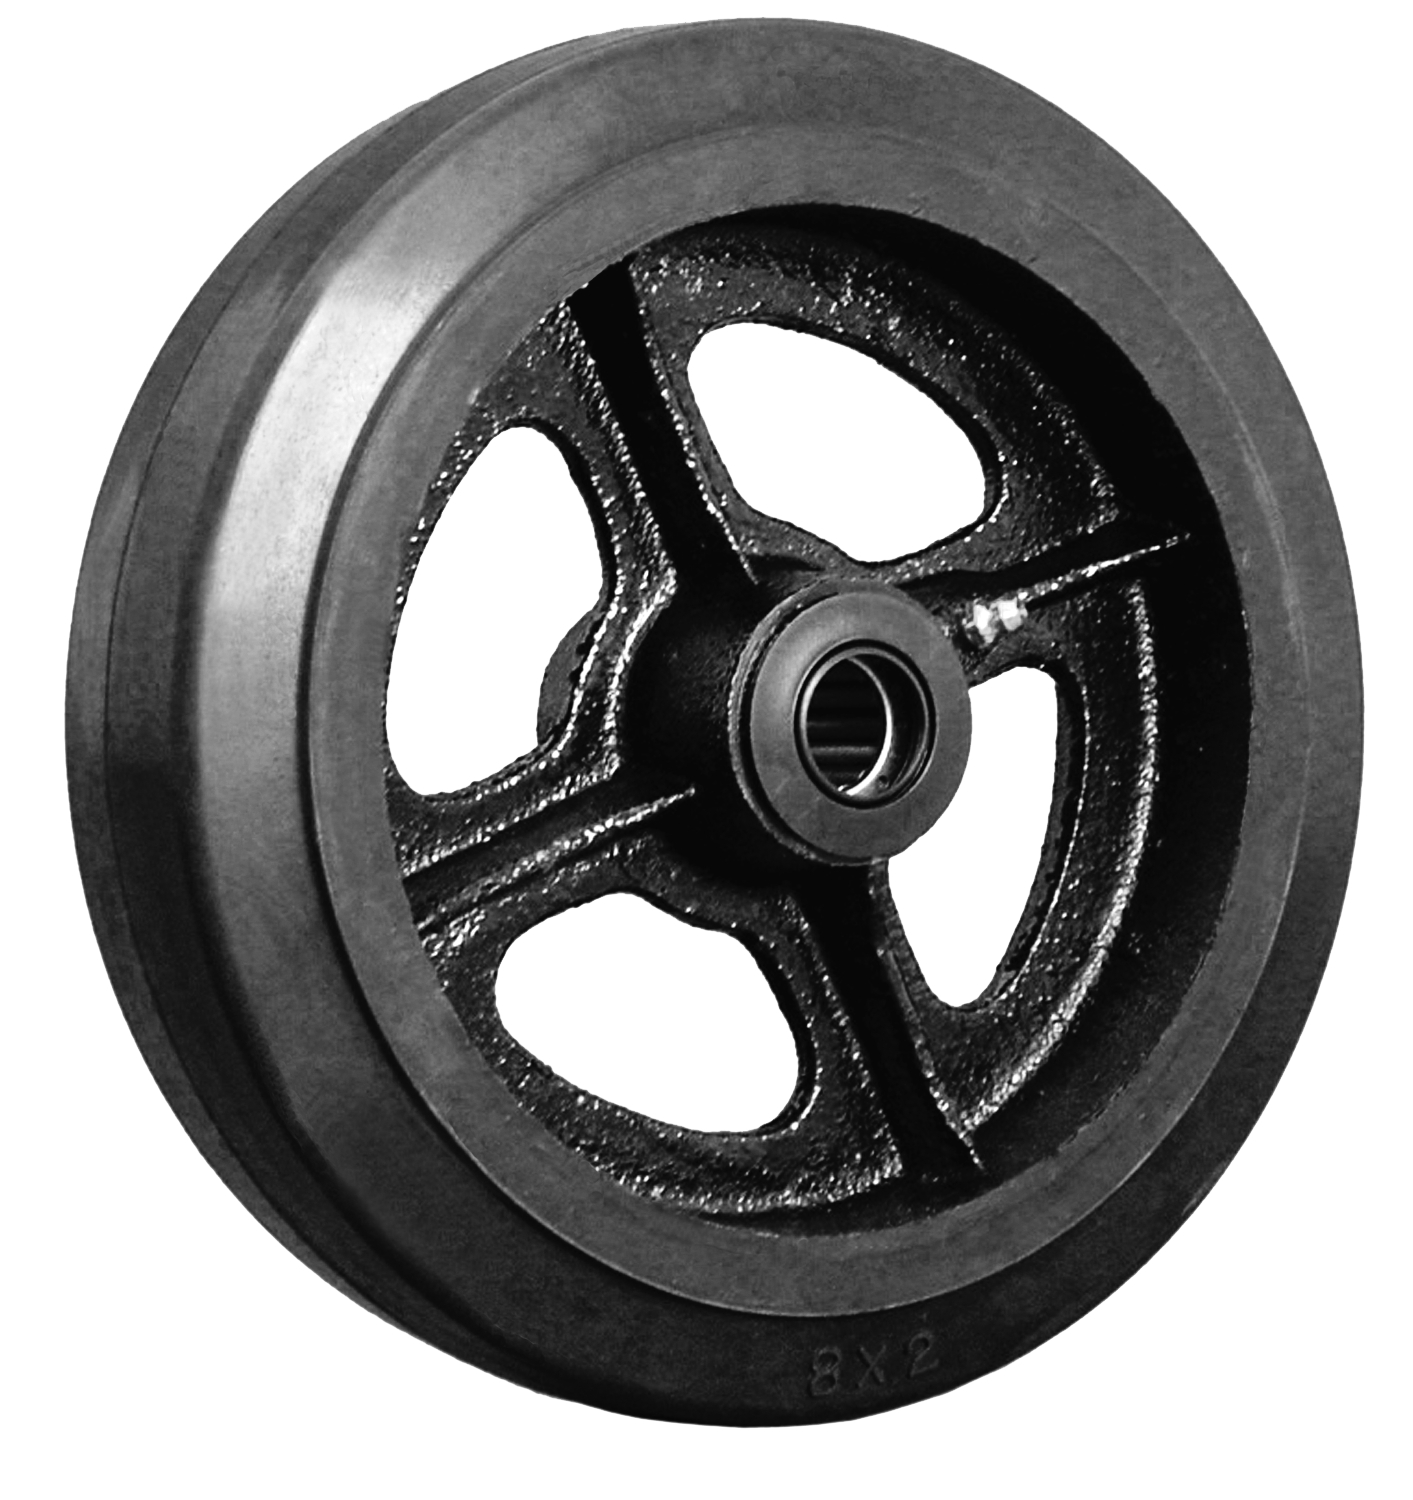 Caster wheel with black rubber on steel hub and a bearing.